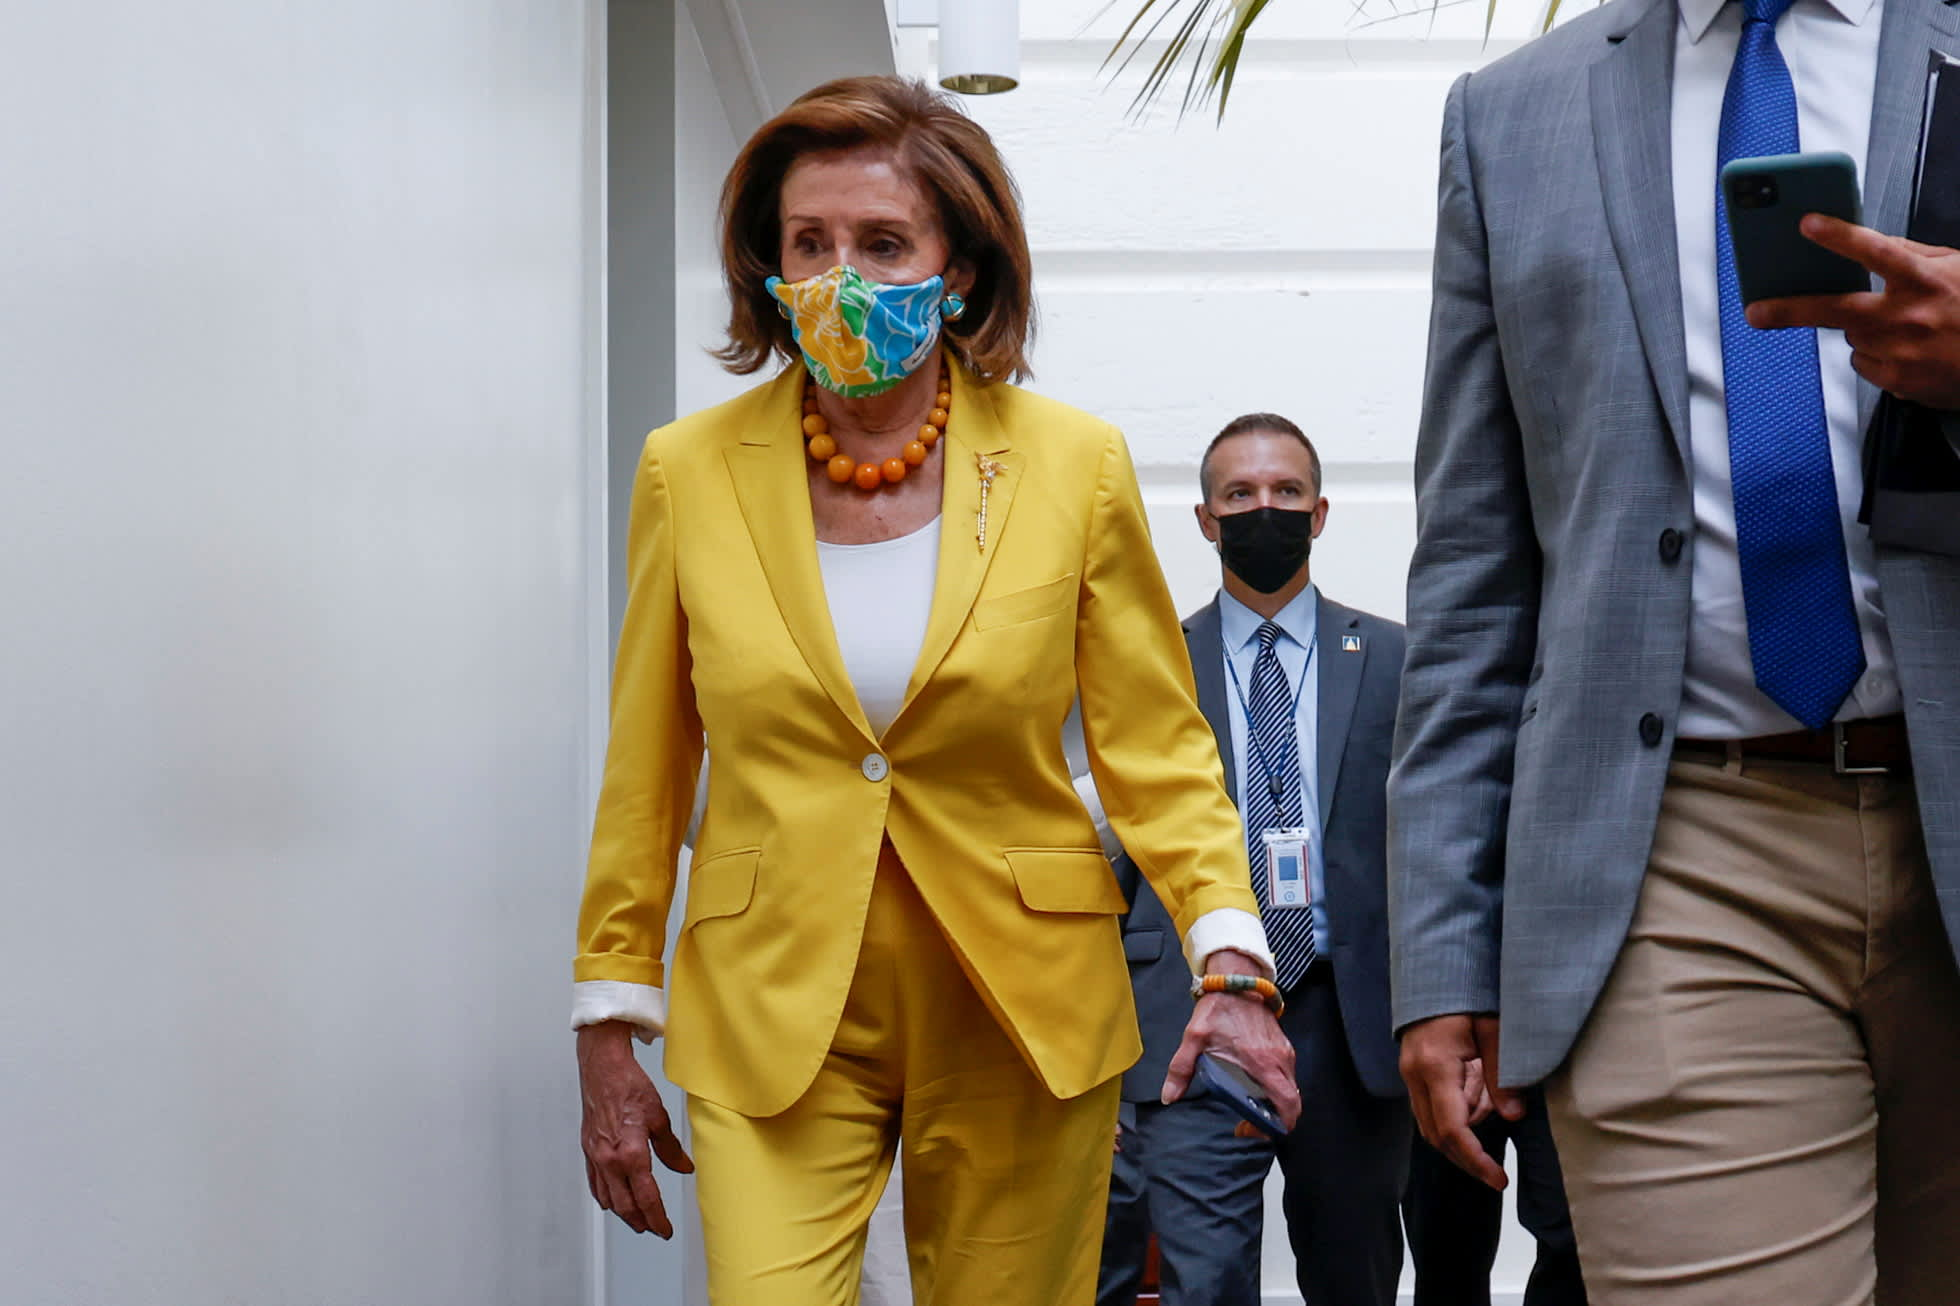 House Democrats clear path toward passing $3.5 trillion budget bill and infrastructure plan after breaking stalemate – CNBC